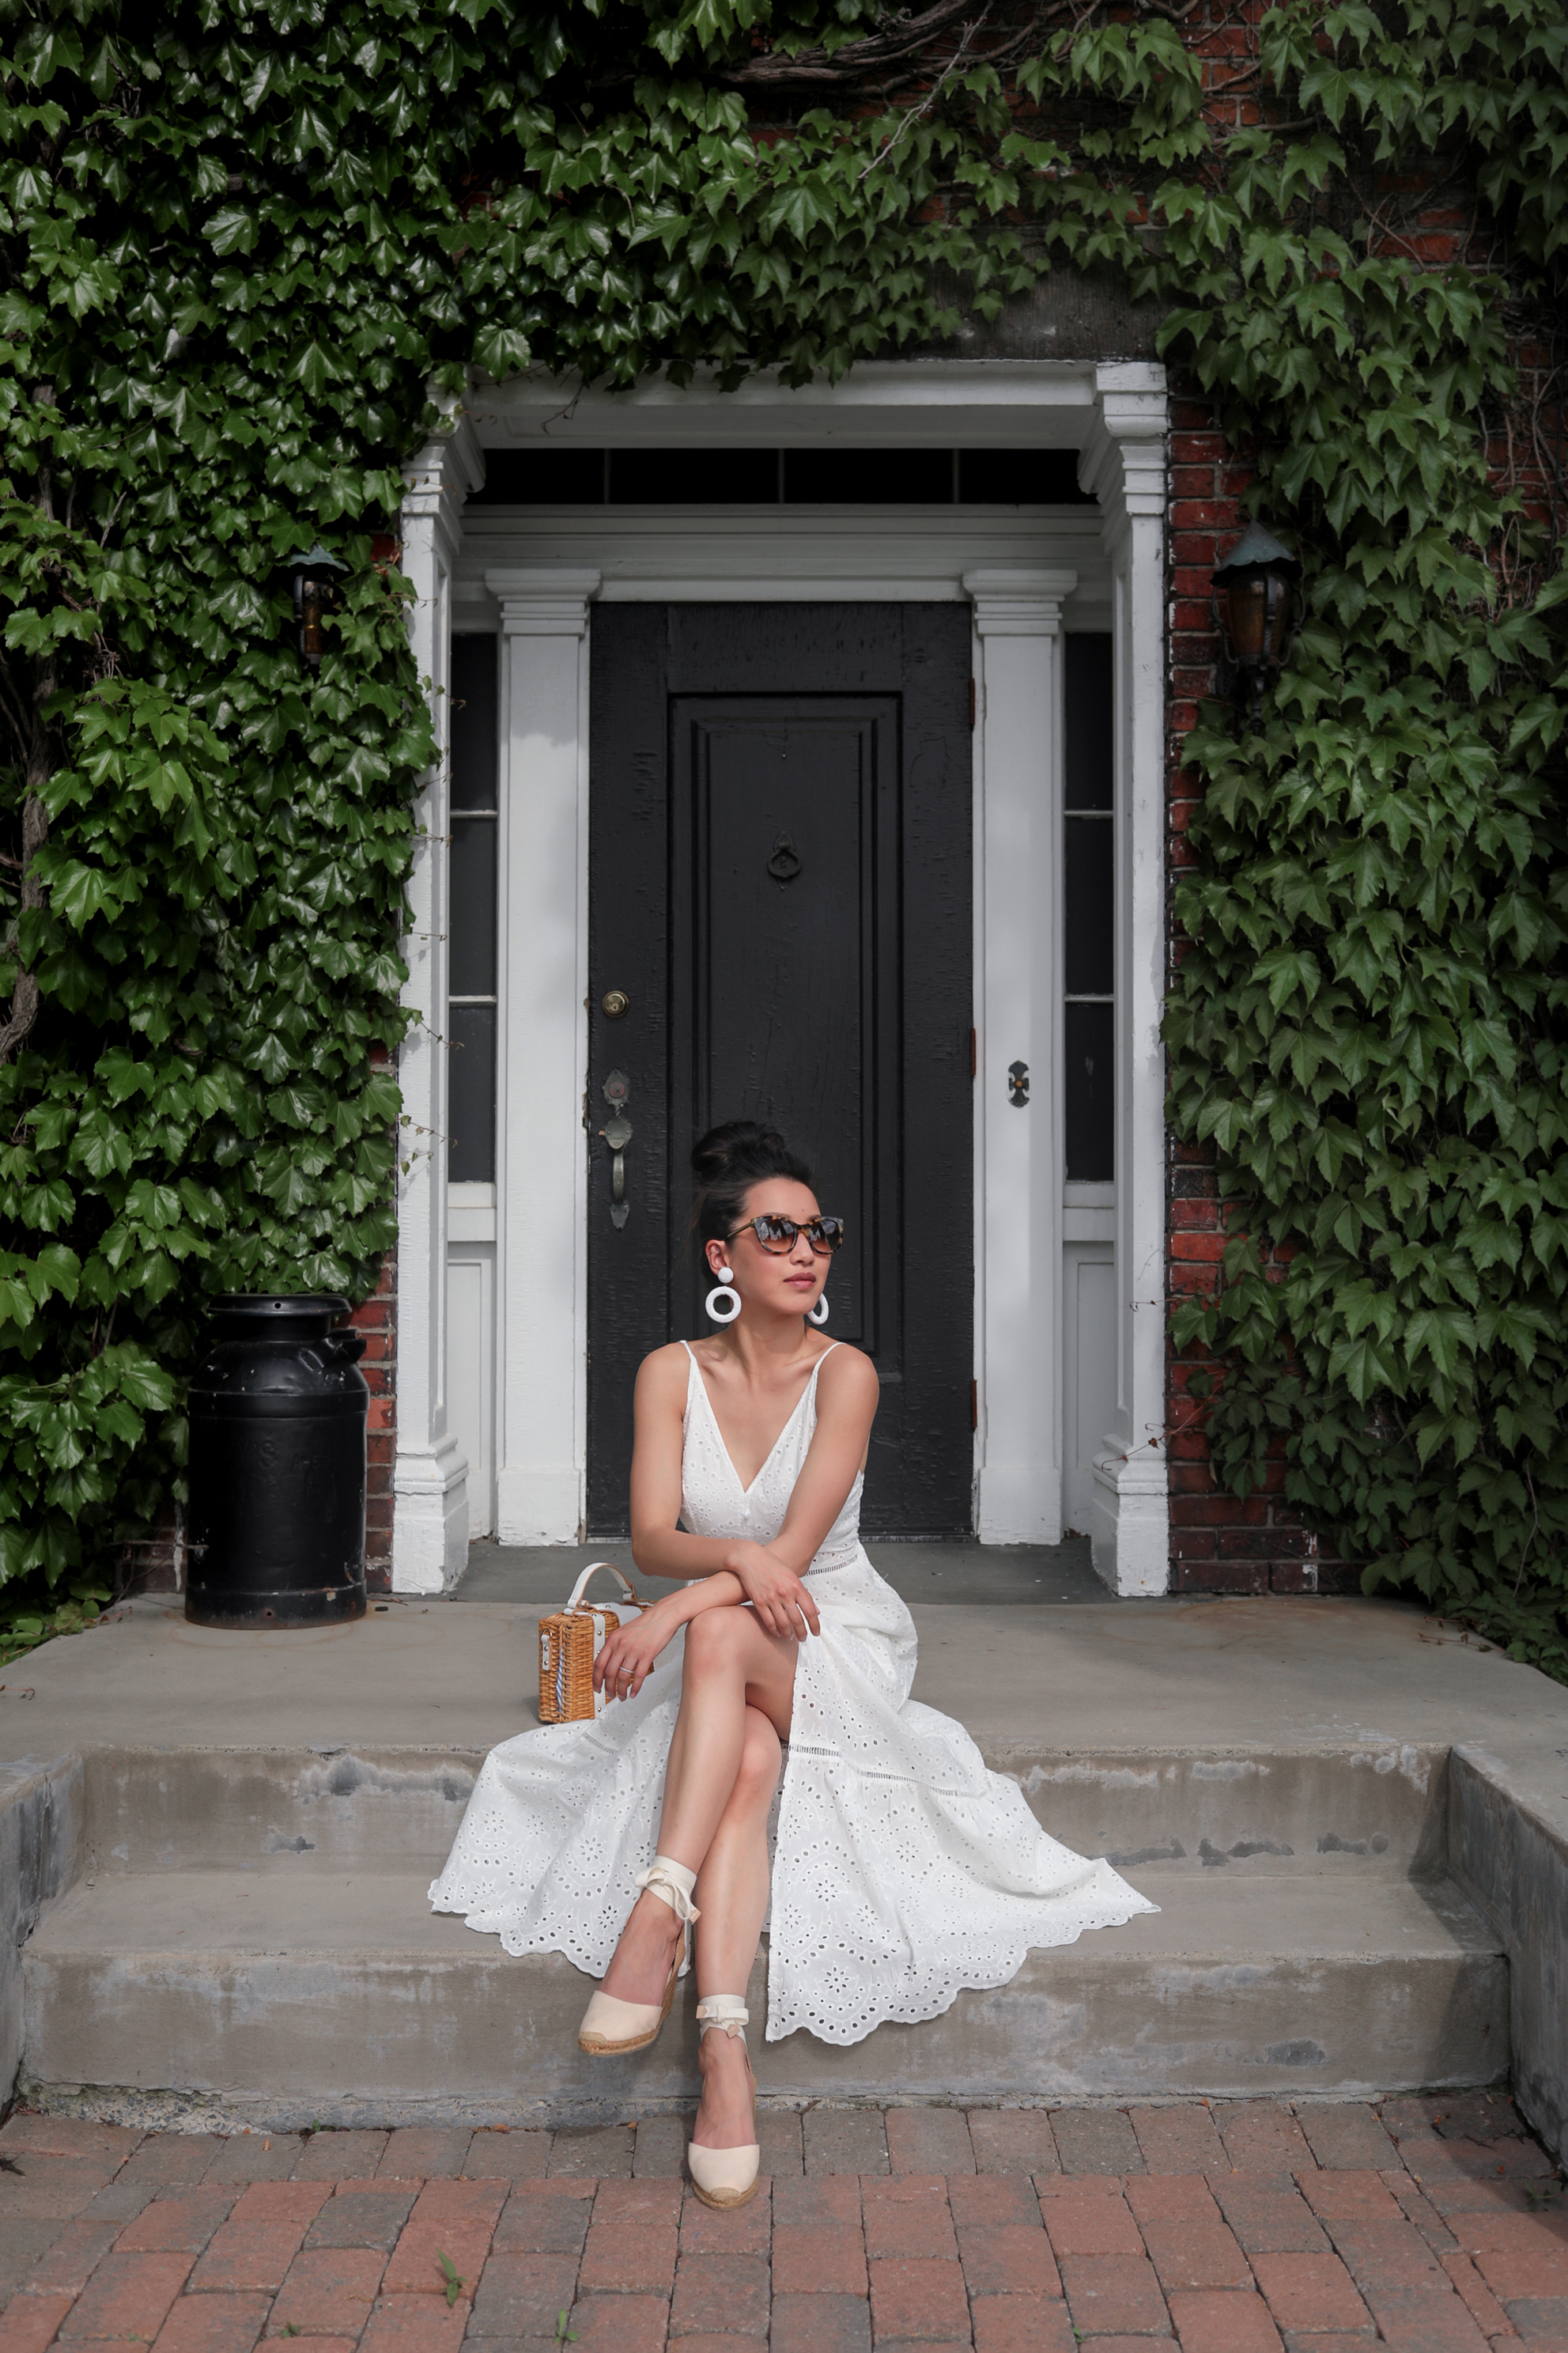 Summer whites: affordable + petite friendly eyelet dress